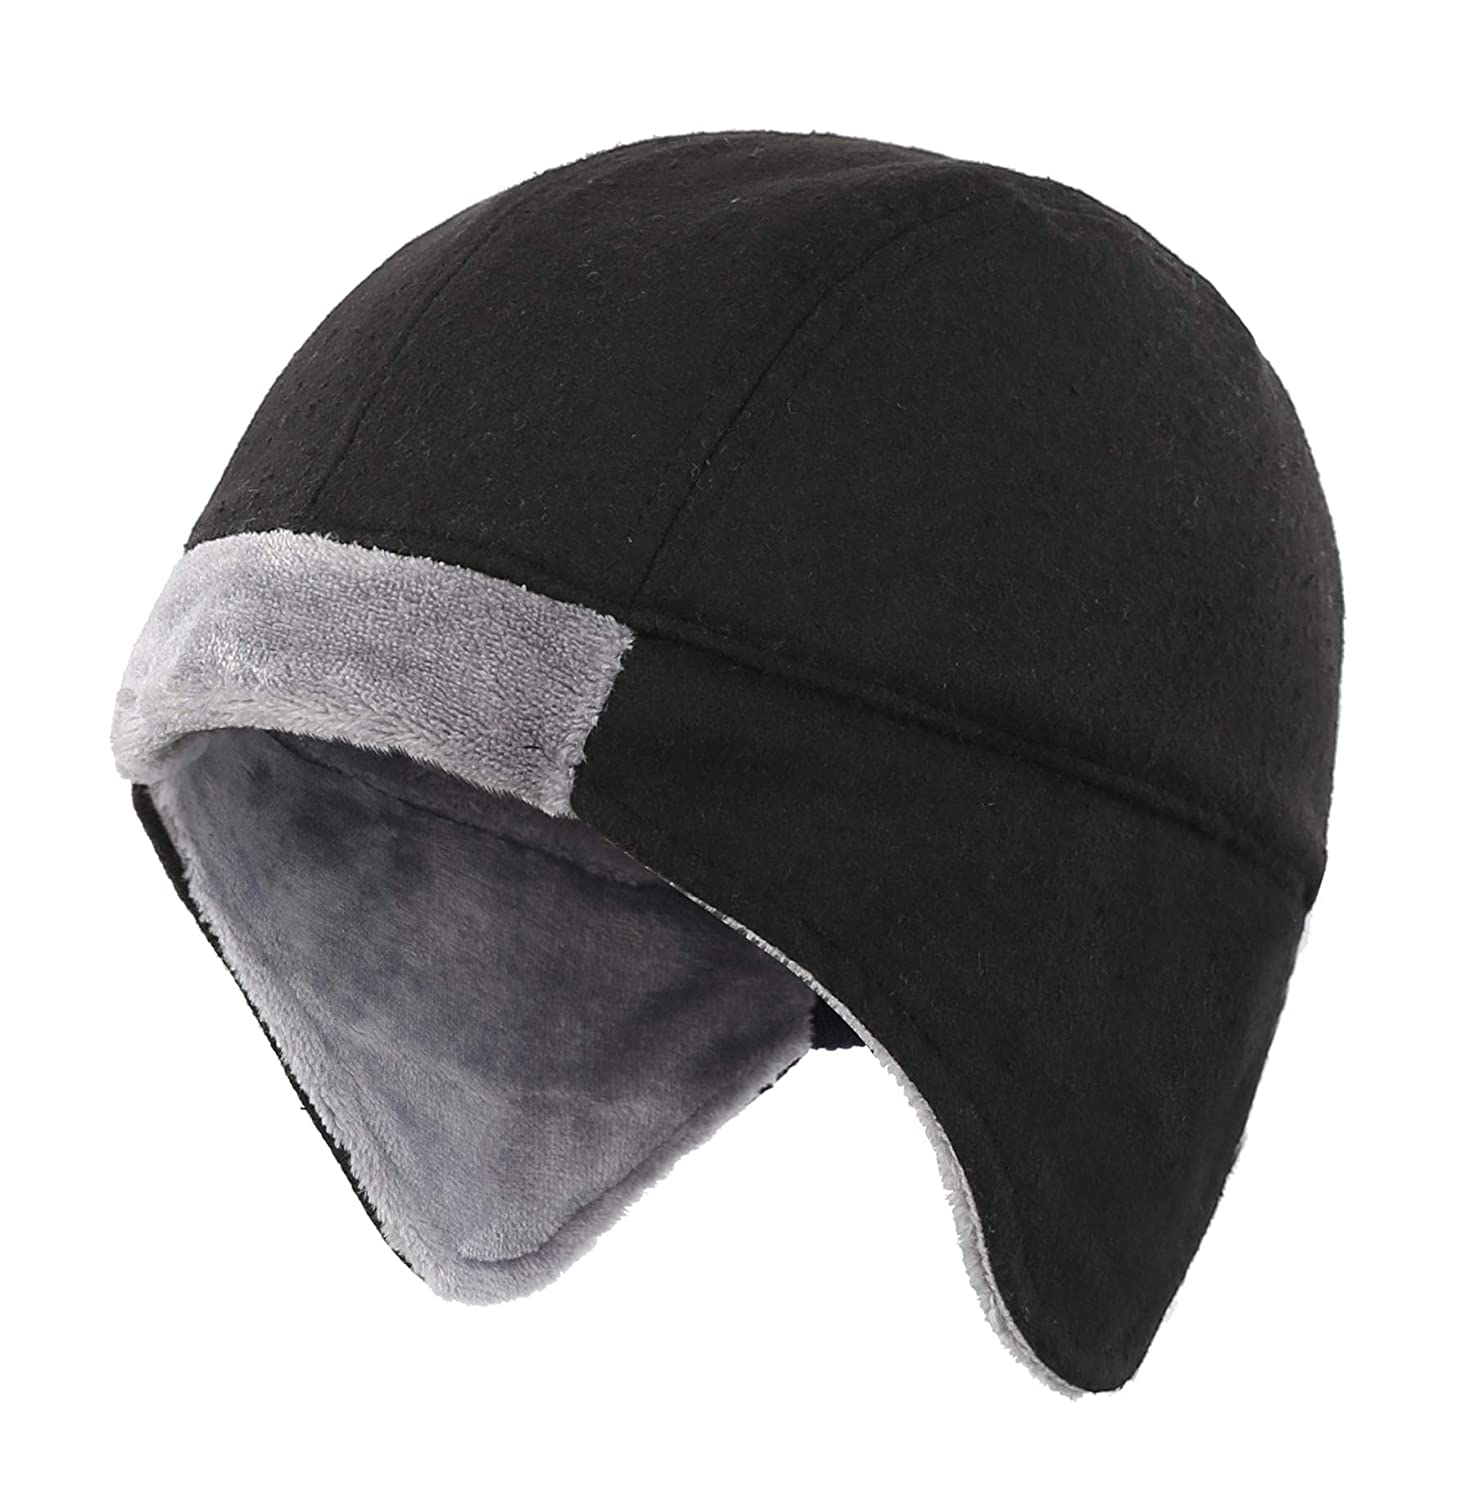 9e33c86fcfecc Connectyle Mens Fleece Lined Skull Cap Warm Winter Beanie with Ear Covers  Running Cycling Sports Hat Black at Amazon Men s Clothing store